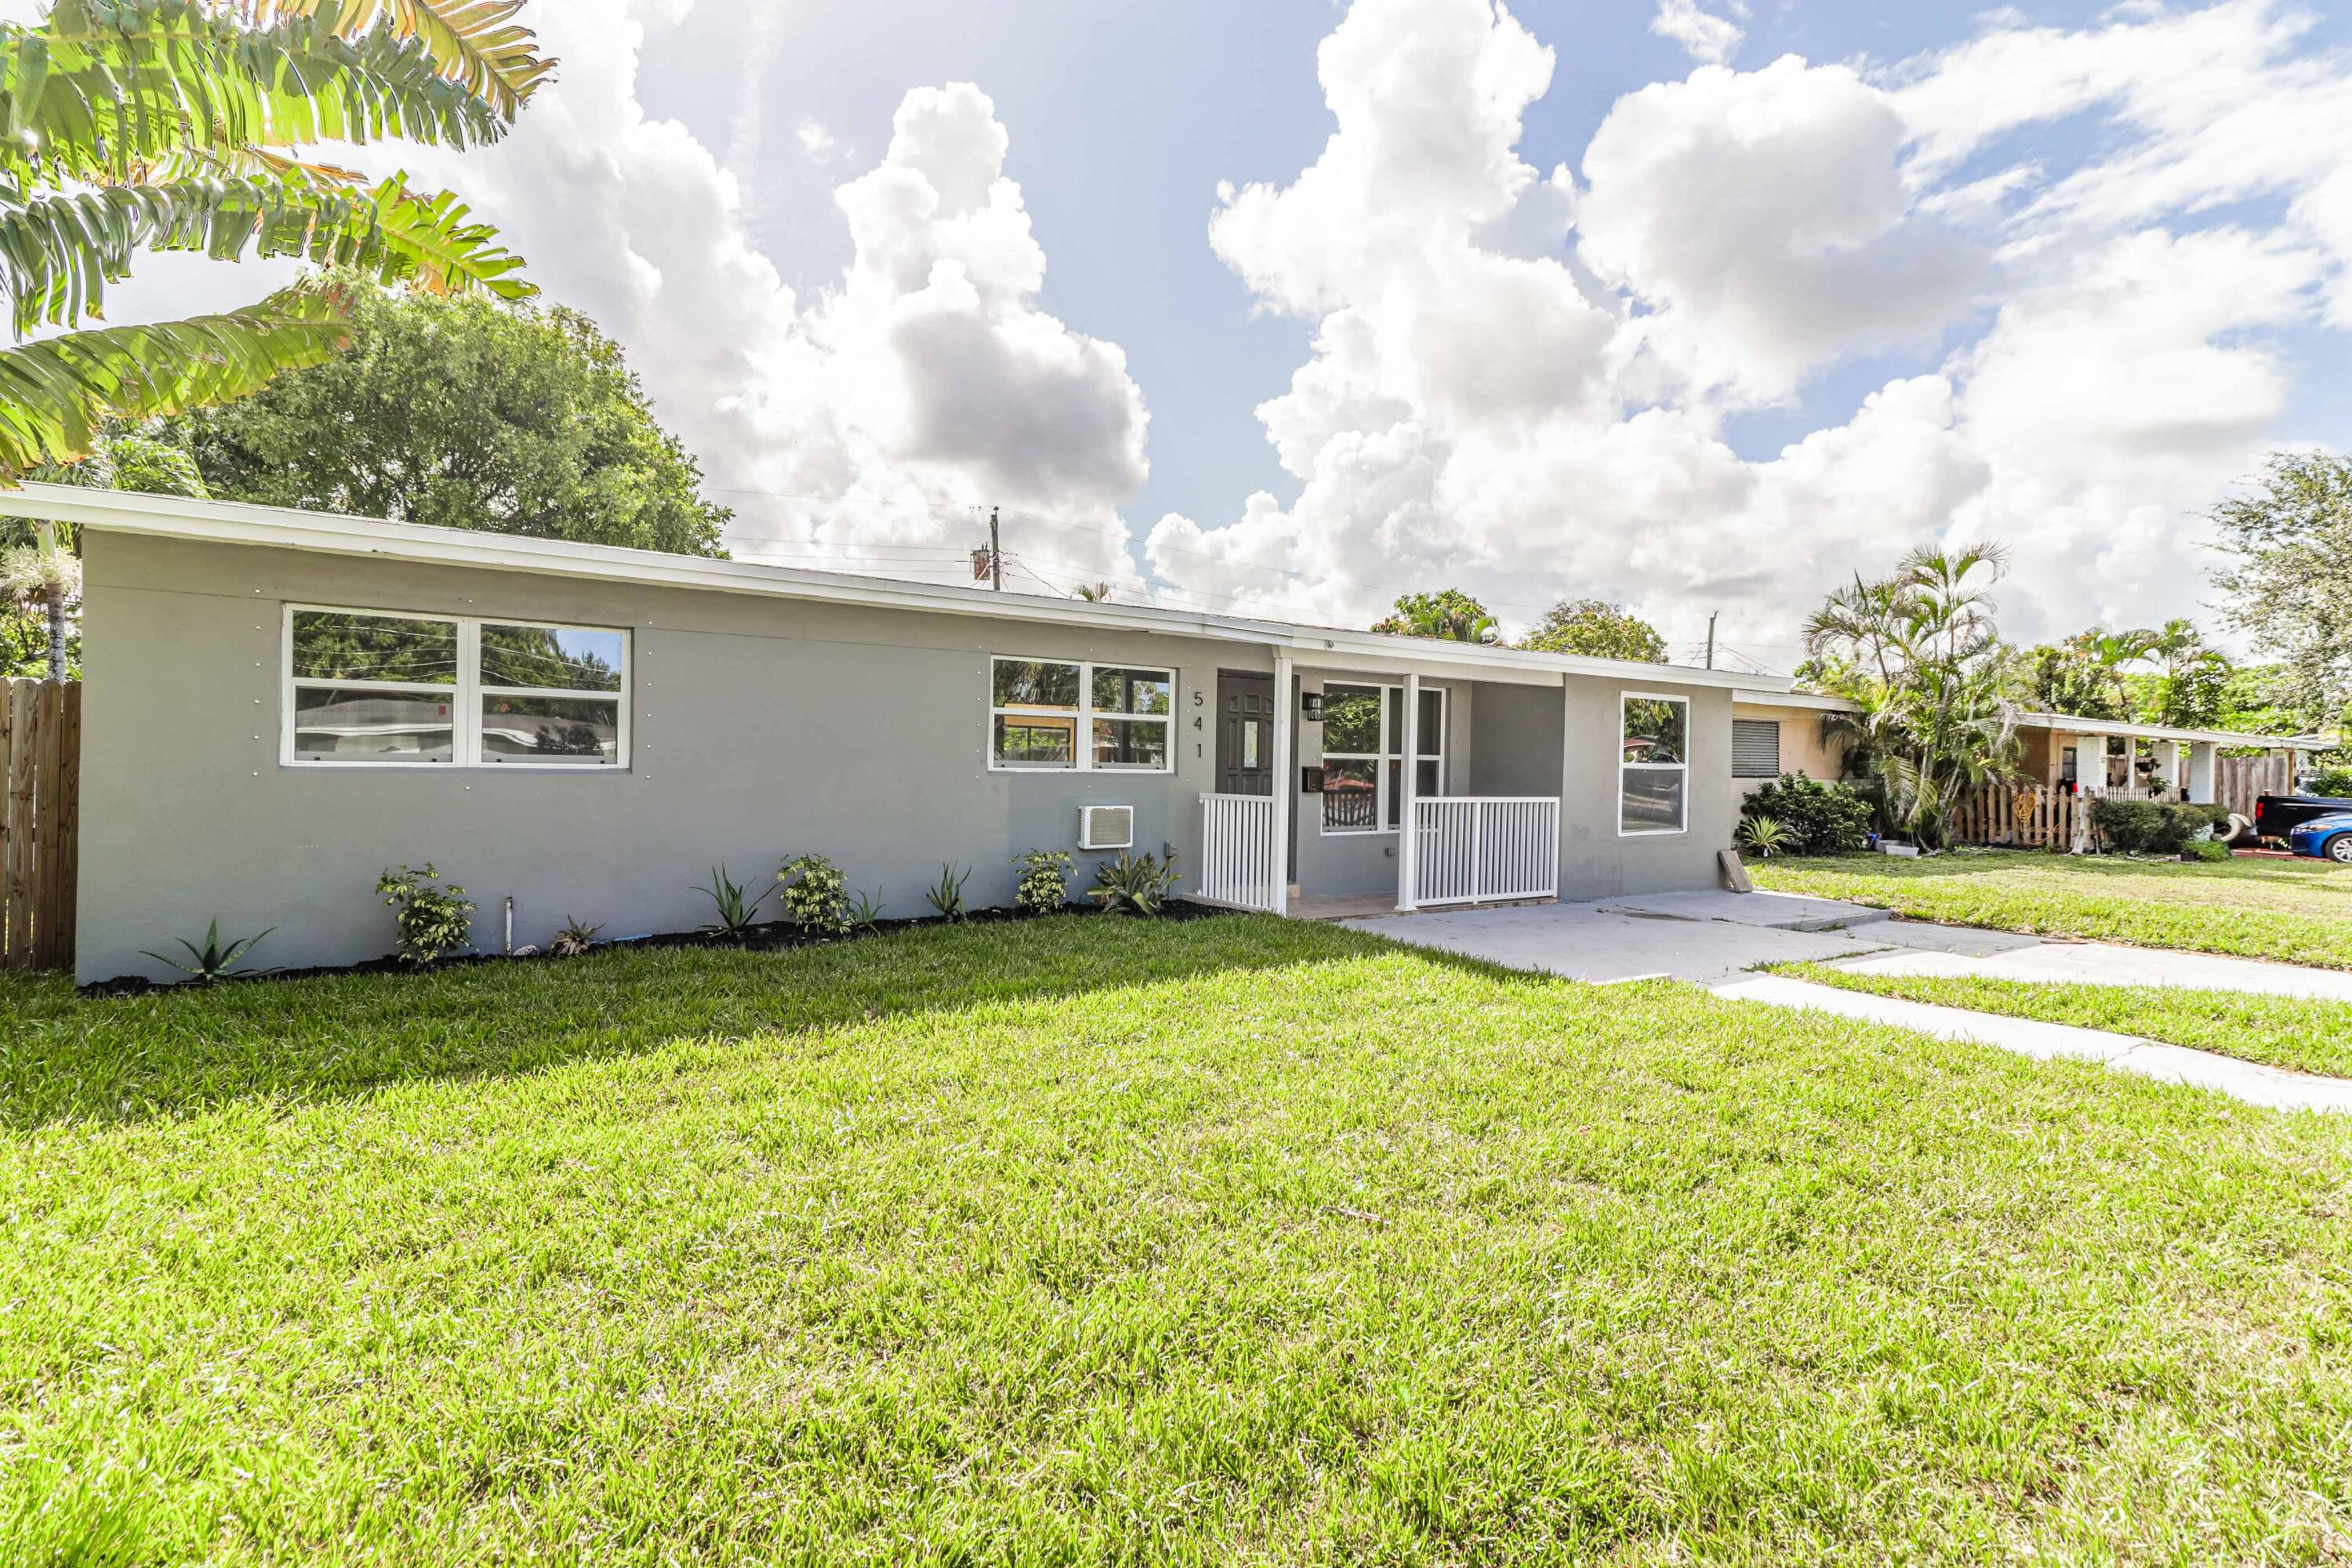 Home for sale in BRENDALE HEIGHTS Fort Lauderdale Florida